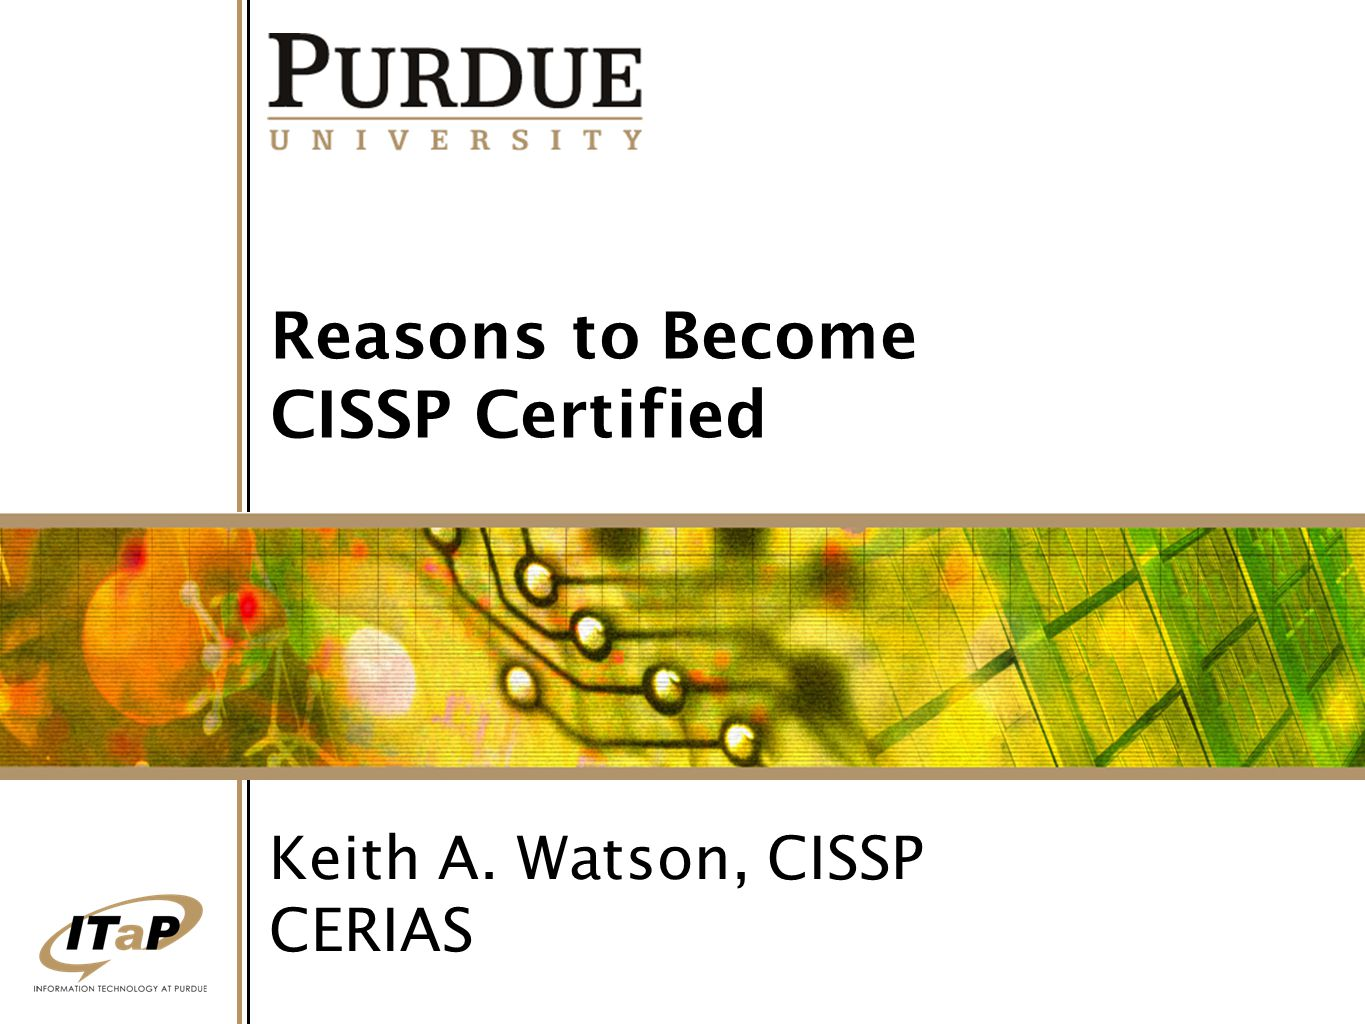 Reasons to Become CISSP Certified Keith A. Watson, CISSP CERIAS